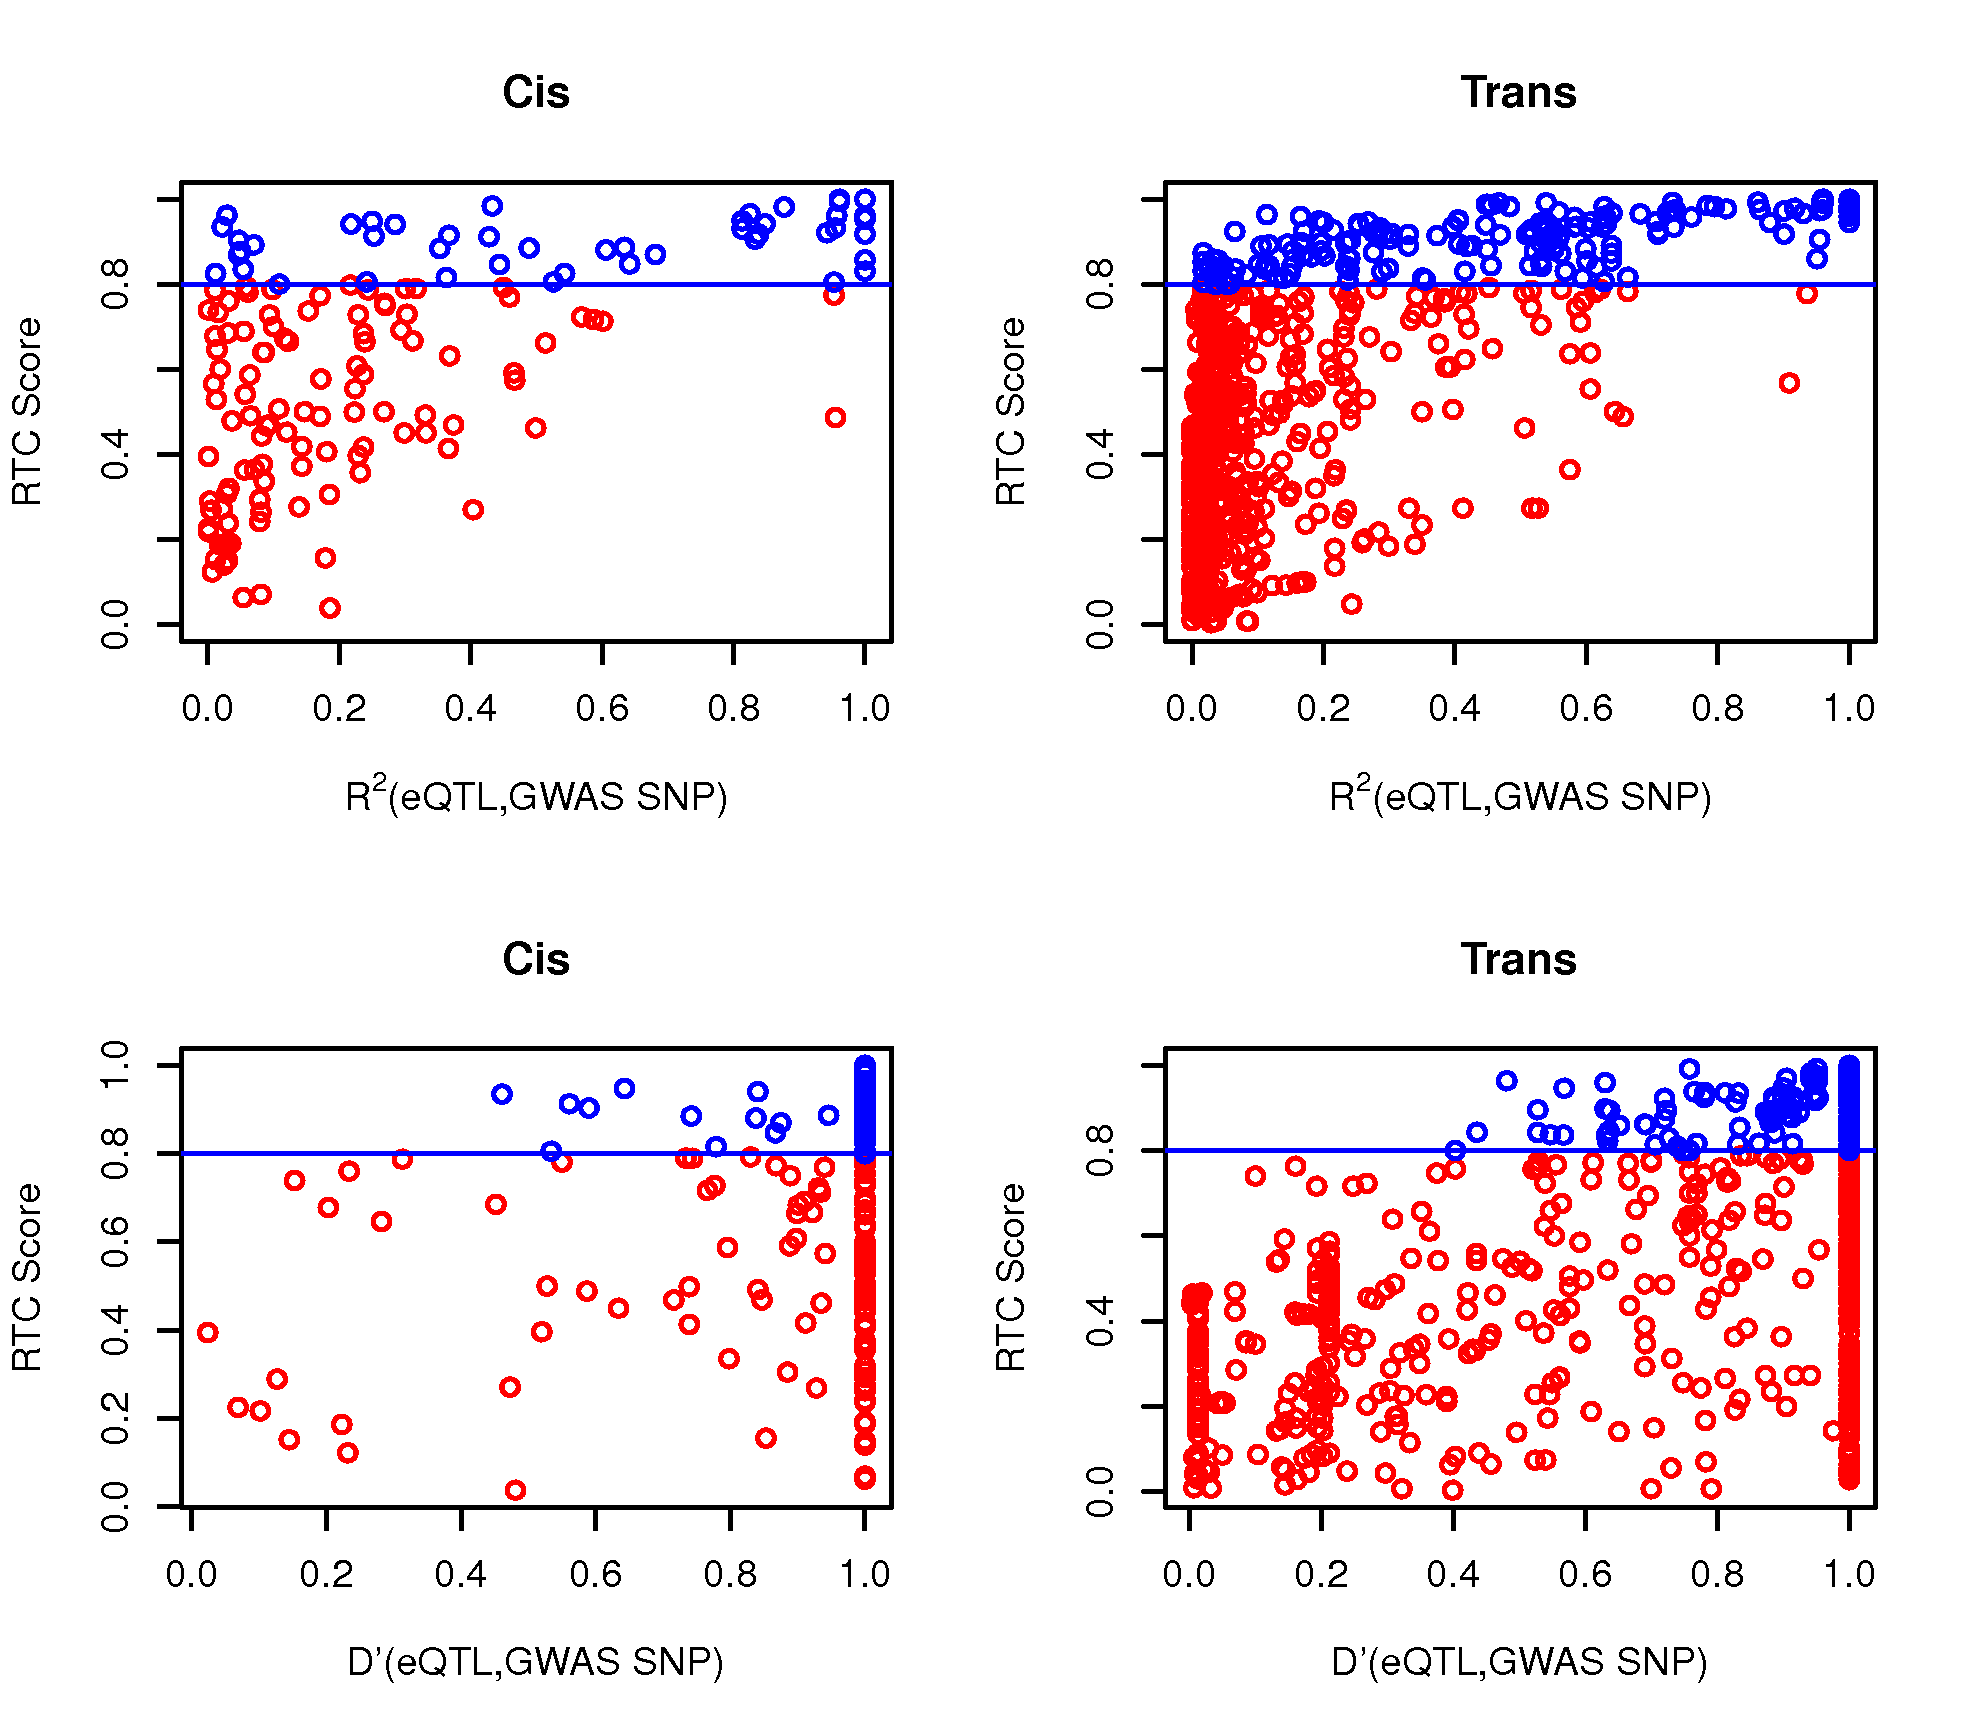 The RTC method compared to standard LD measurements in the observed data.